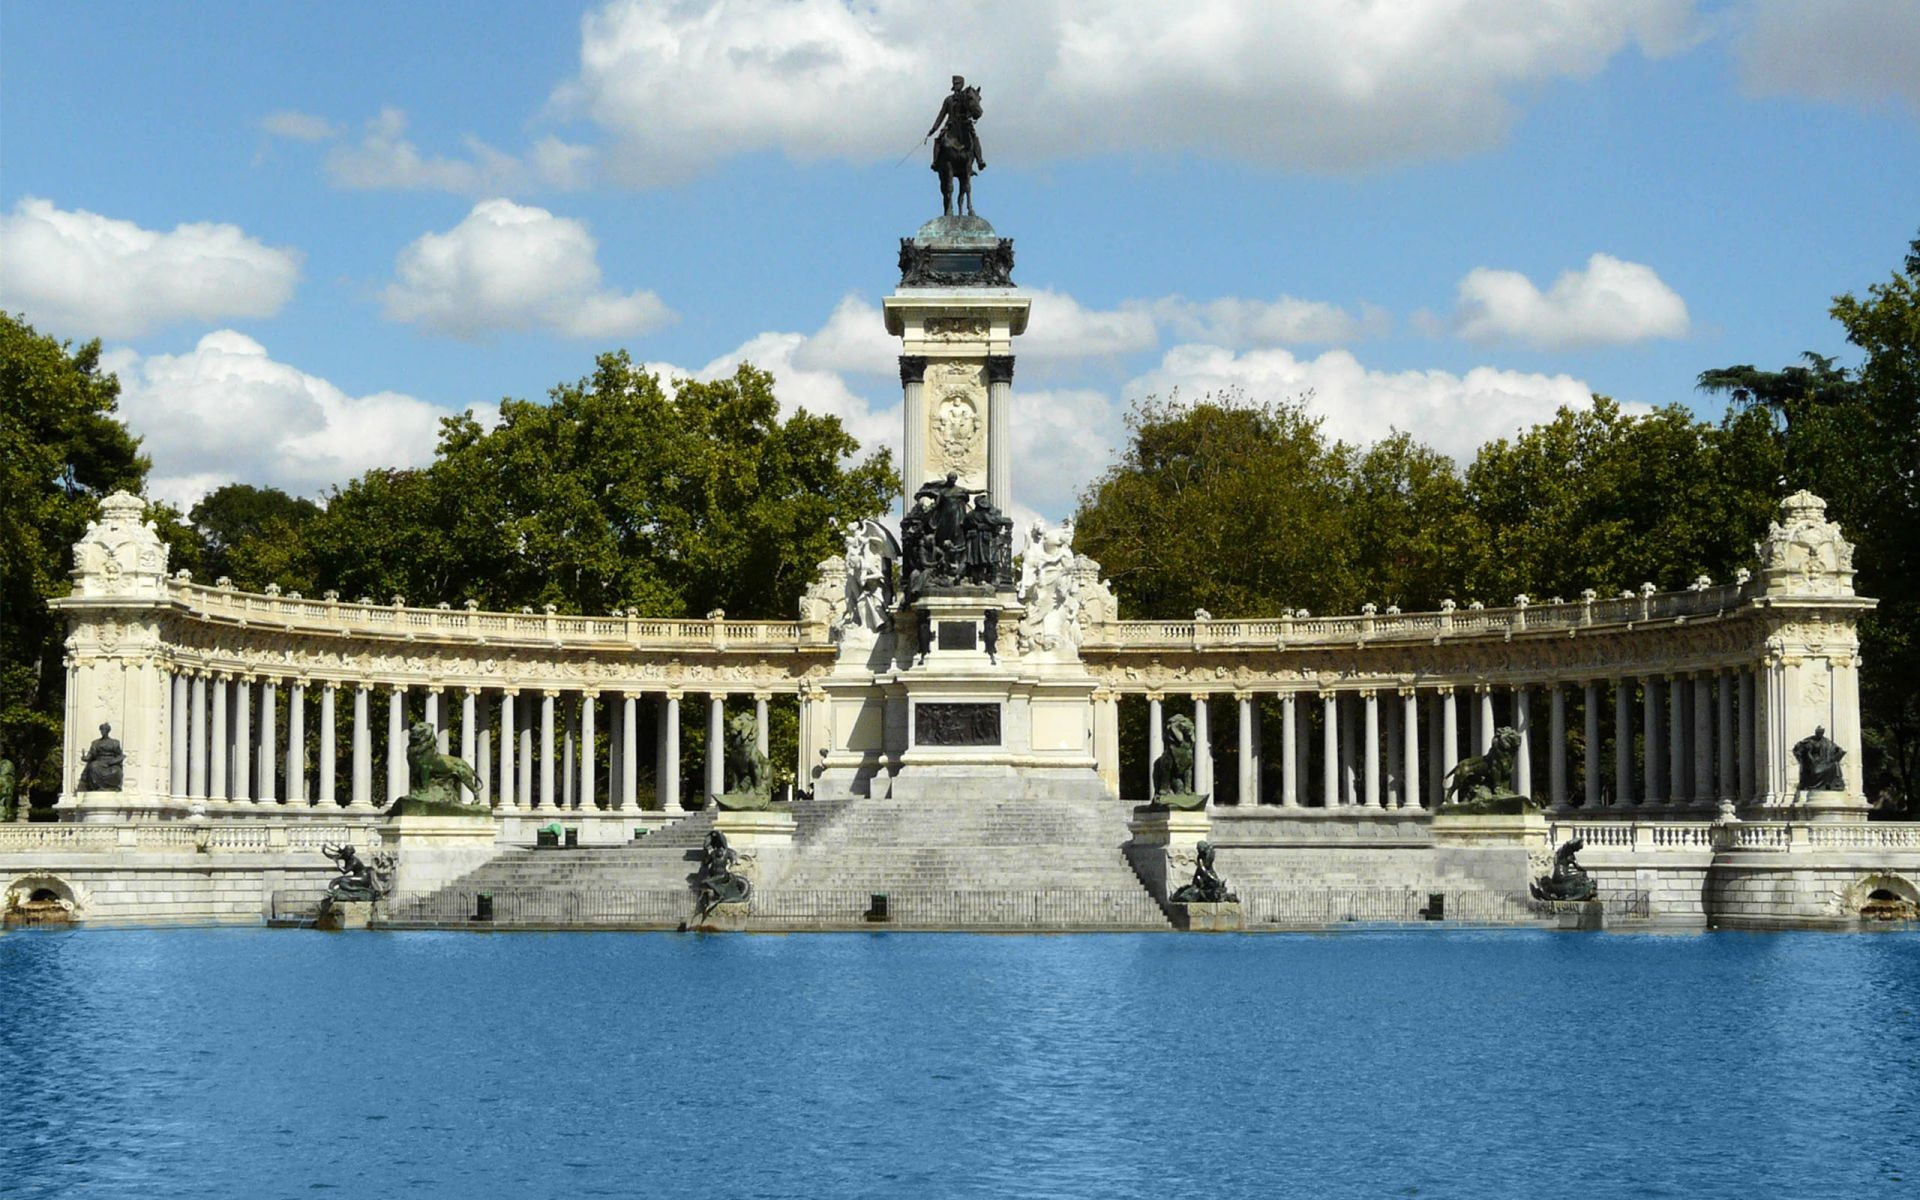 Parque del buen retiro retiro park what to see in madrid for Parques de madrid espana